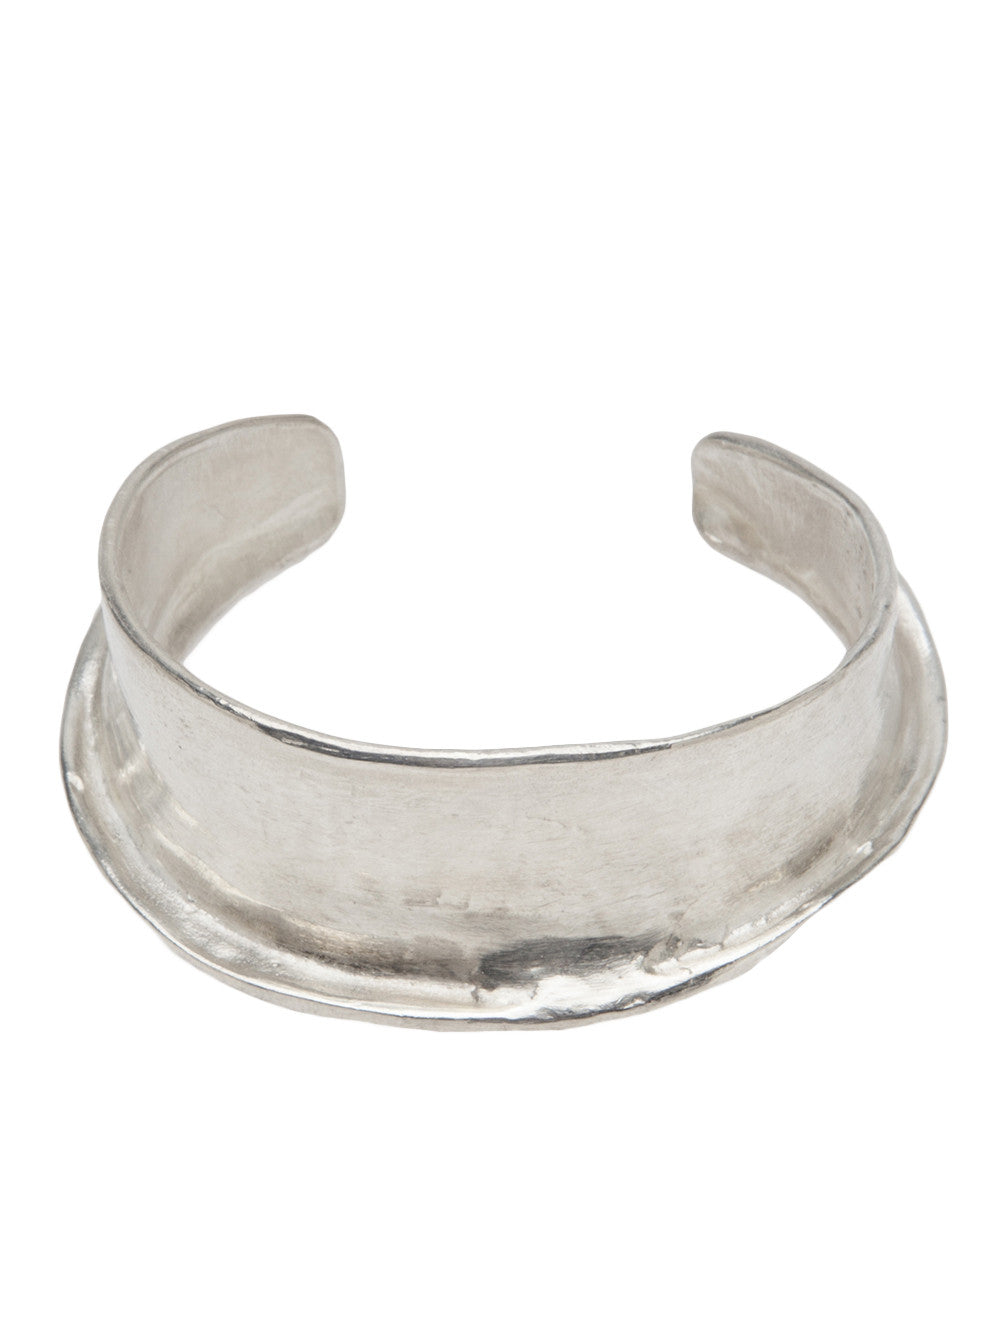 Sterling Silver Curved Tip Cuff (B-3 EDITION #22,23 SILVER) - H. Lorenzo